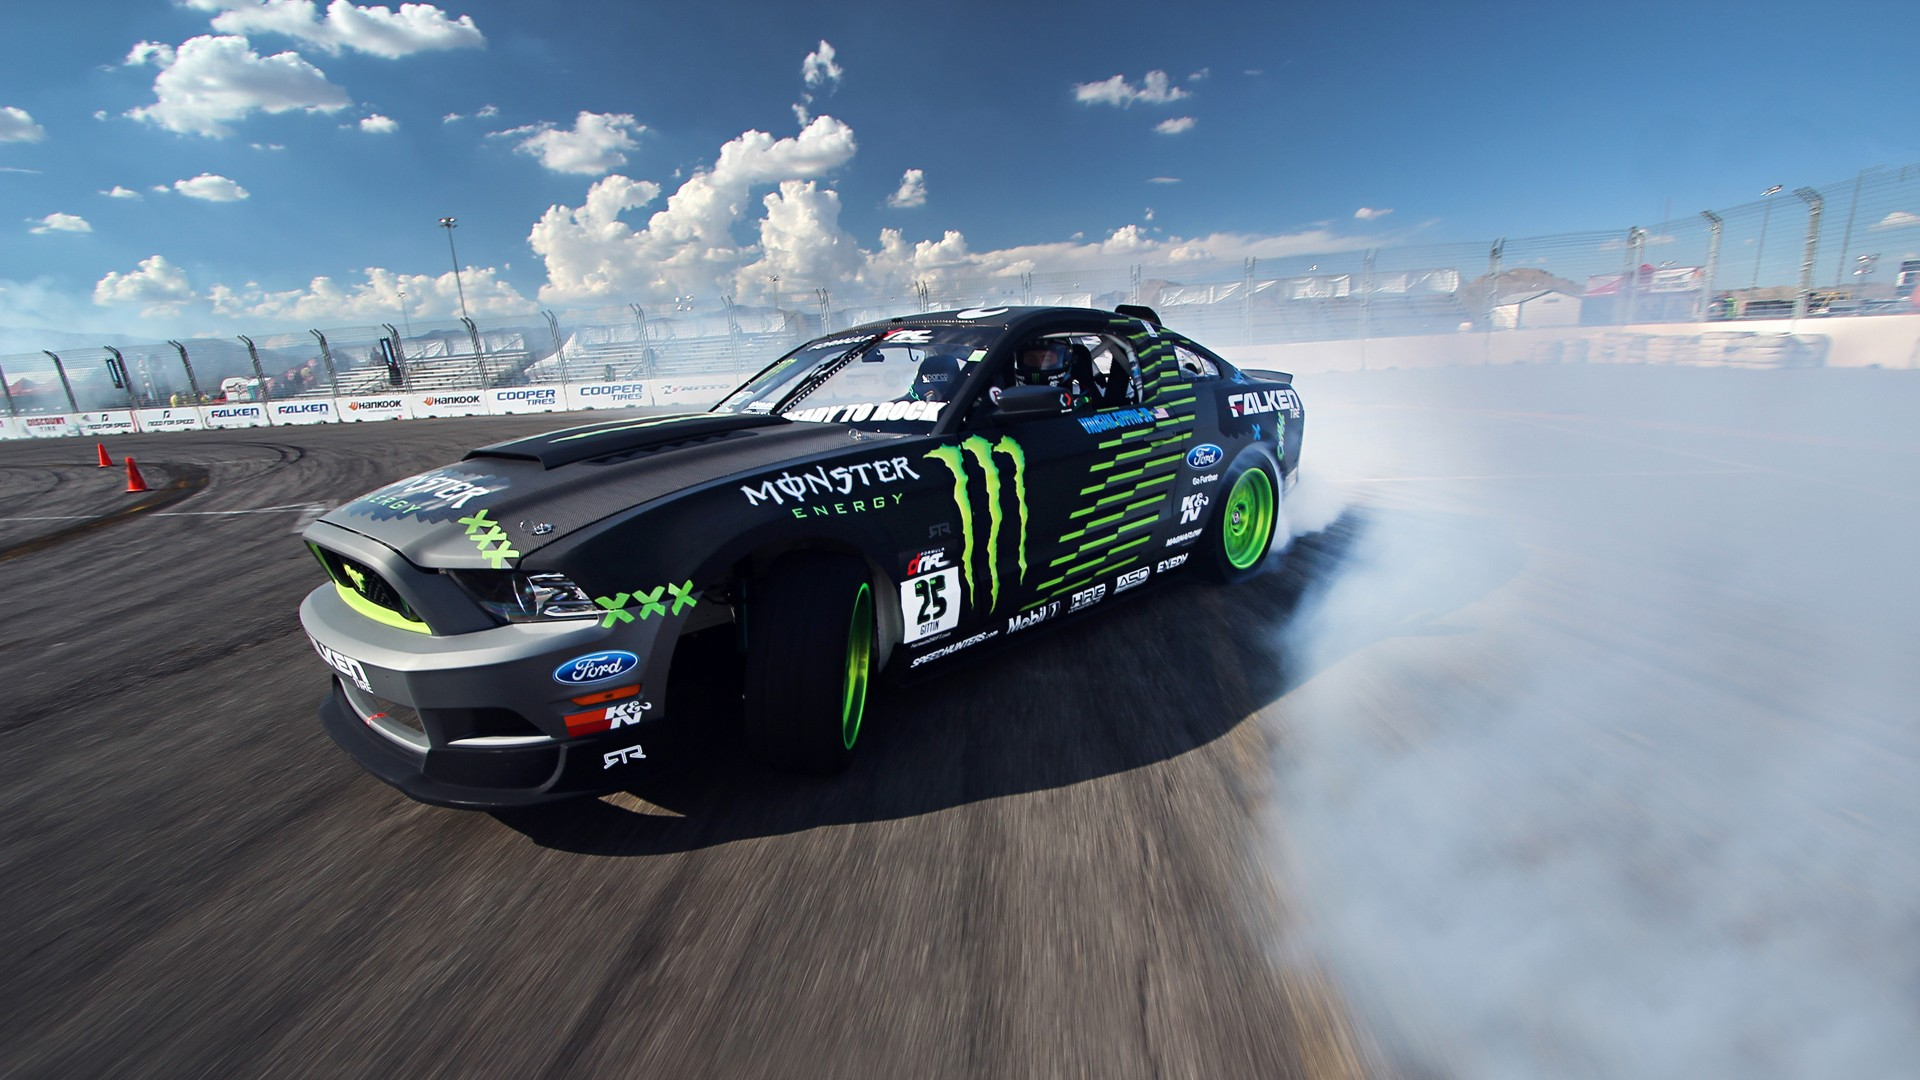 Ford Mustang Monster Car Drift, HD Cars, 4k Wallpapers, Images, Backgrounds, Photos and Pictures